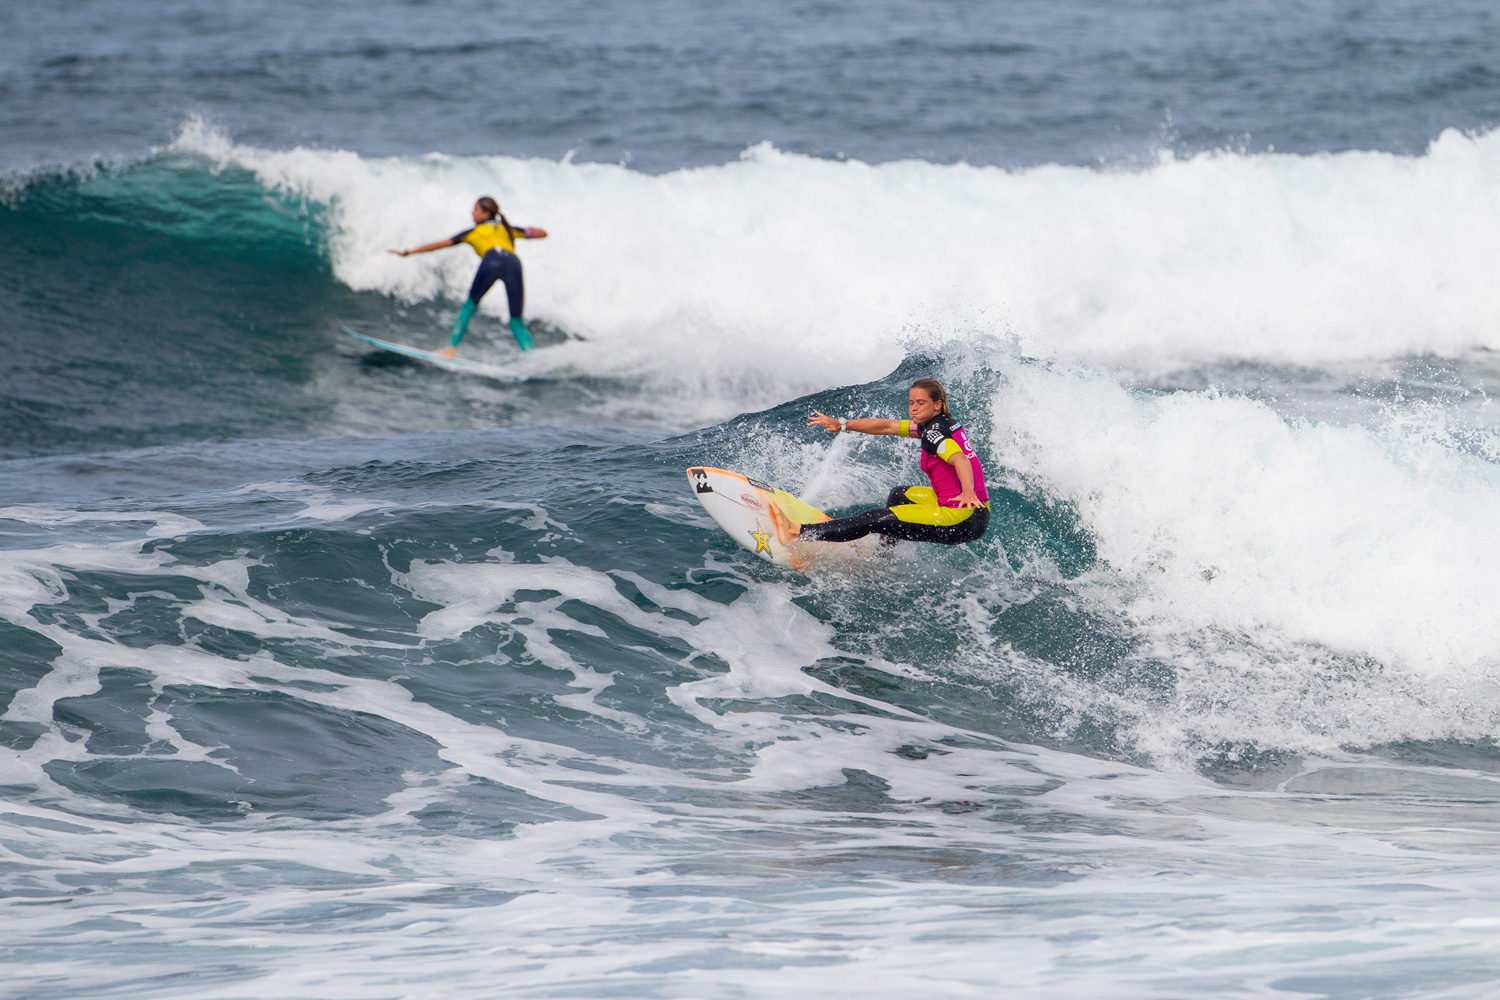 Courtney Conlogue surfs to victory during the first round of the tournament with a mark of 15.00.